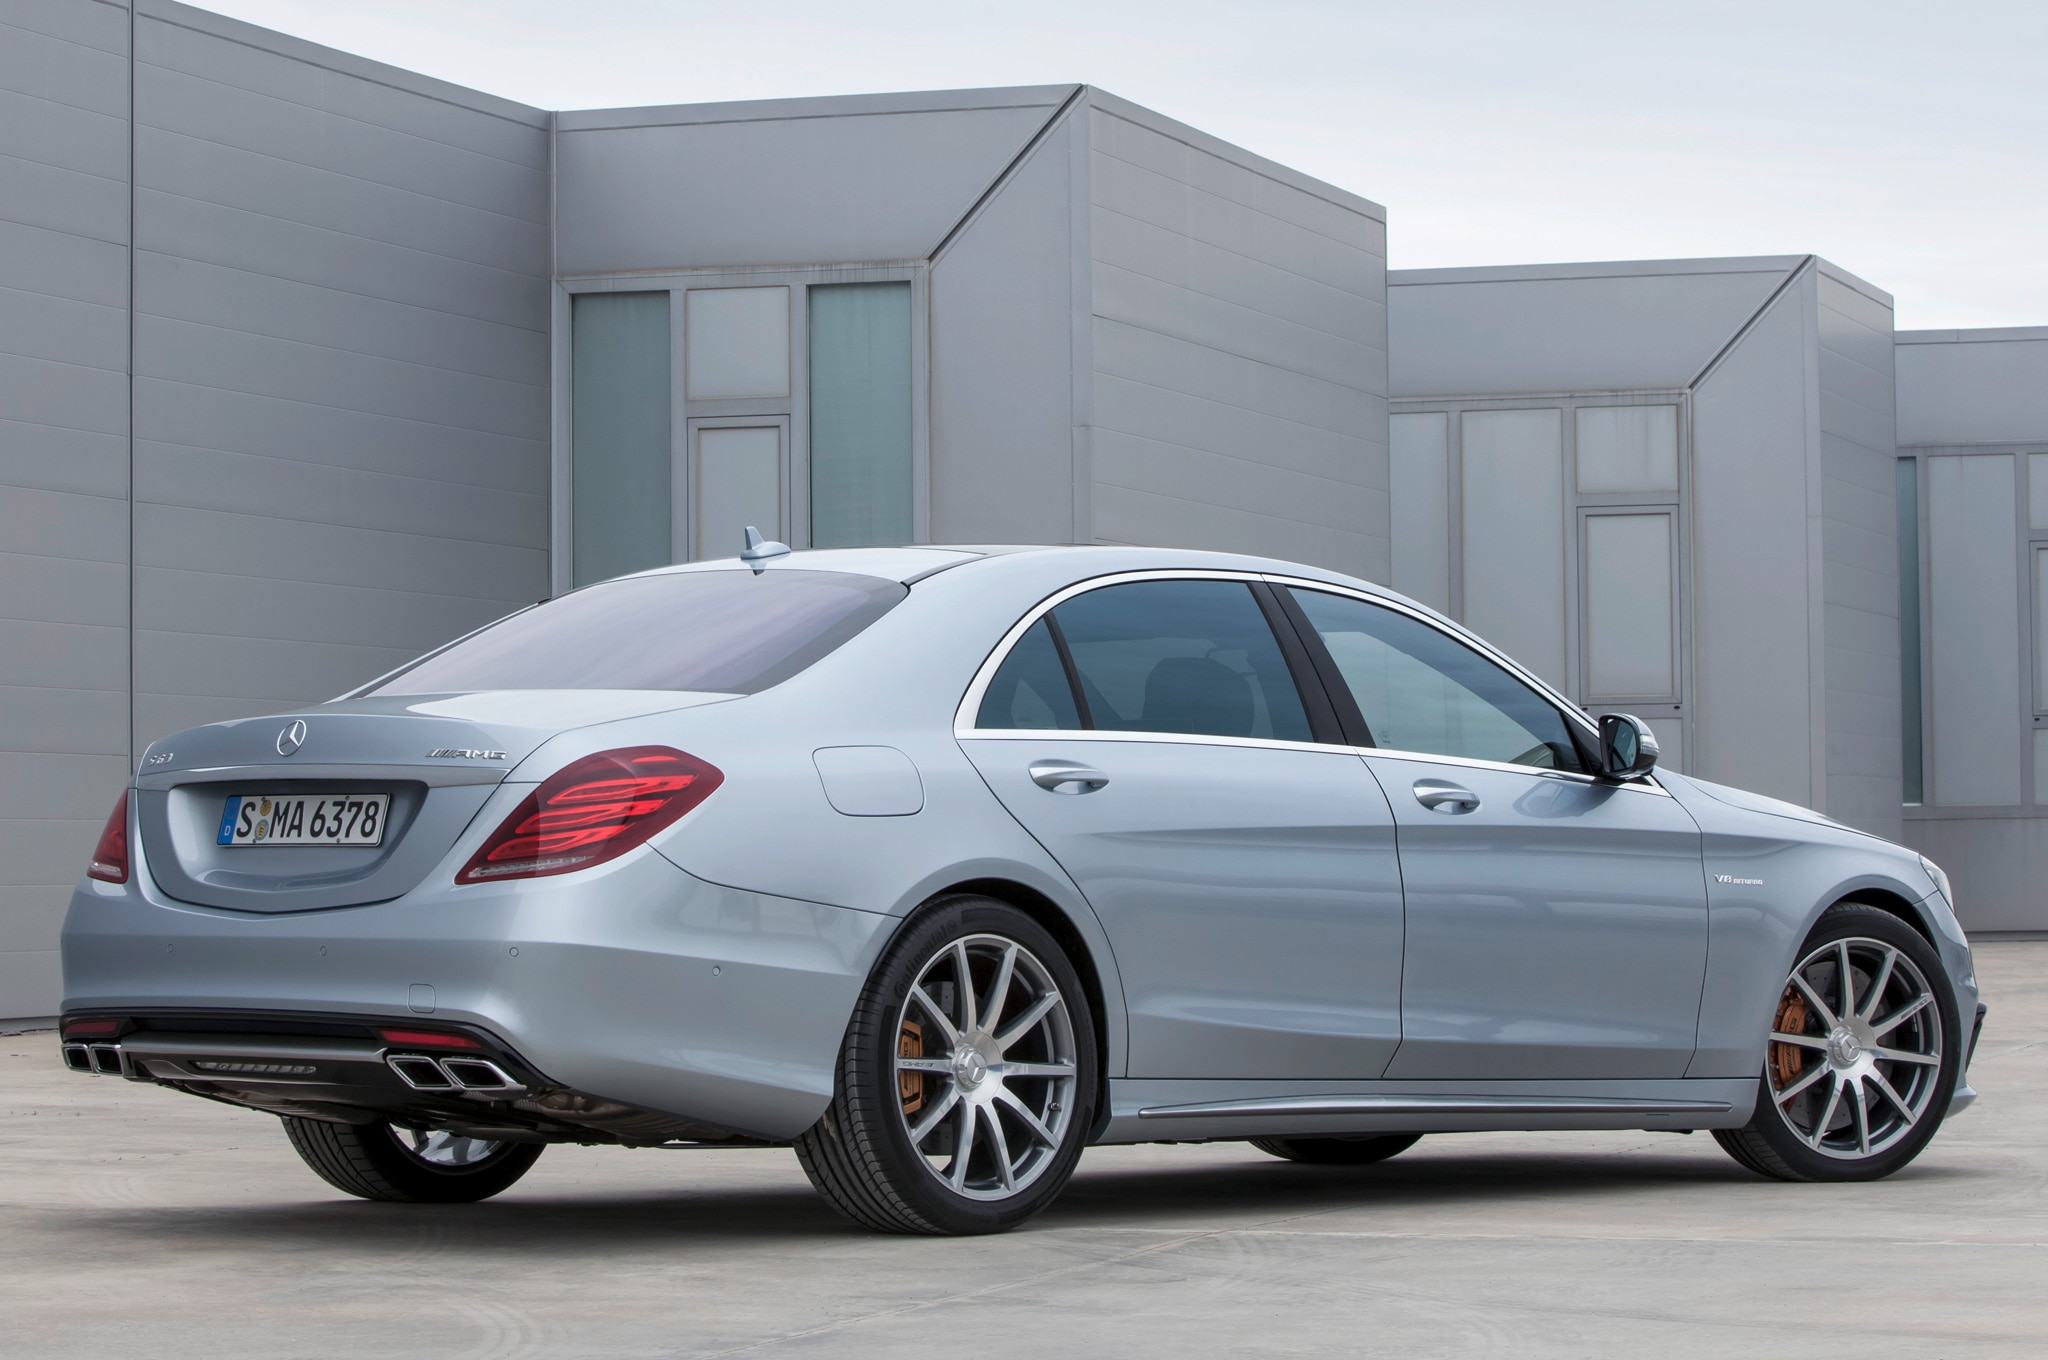 2014 mercedes benz s63 amg 4matic revealed for 2014 mercedes benz s class s63 amg 4matic